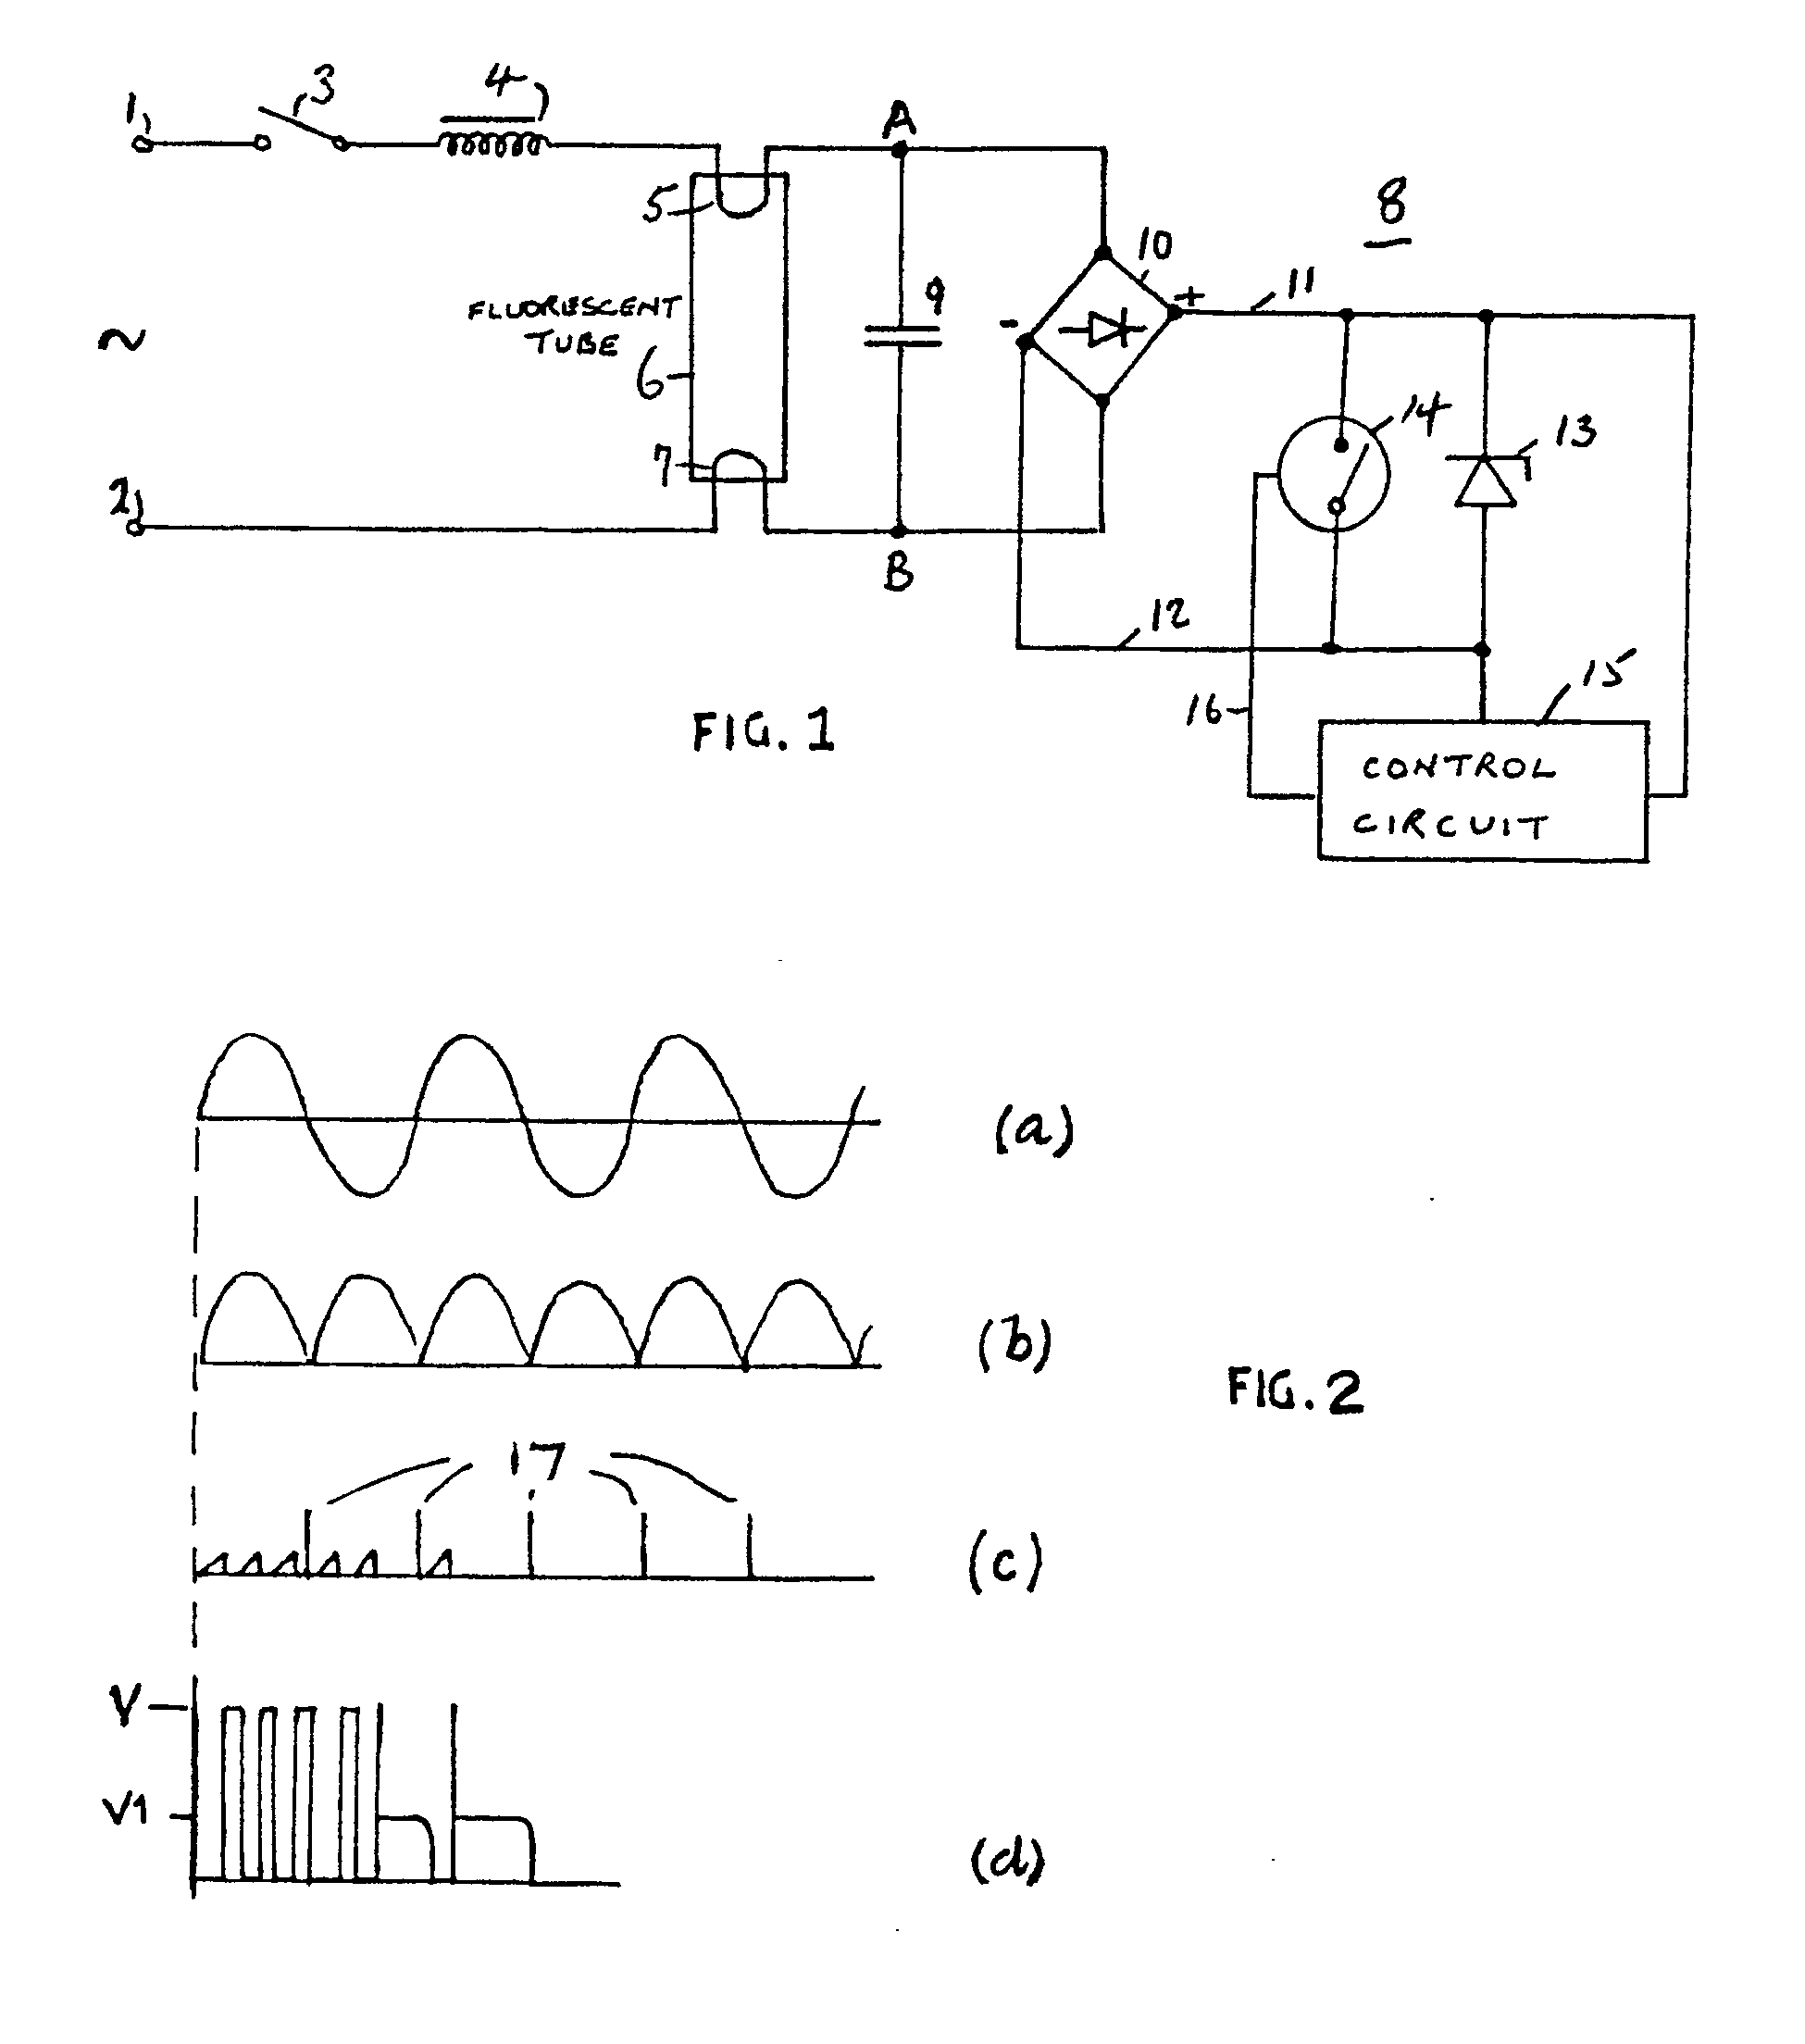 Fluorescent Tube Drawing Patent Ep0249485b1 Starter Circuit For A Fluorescent